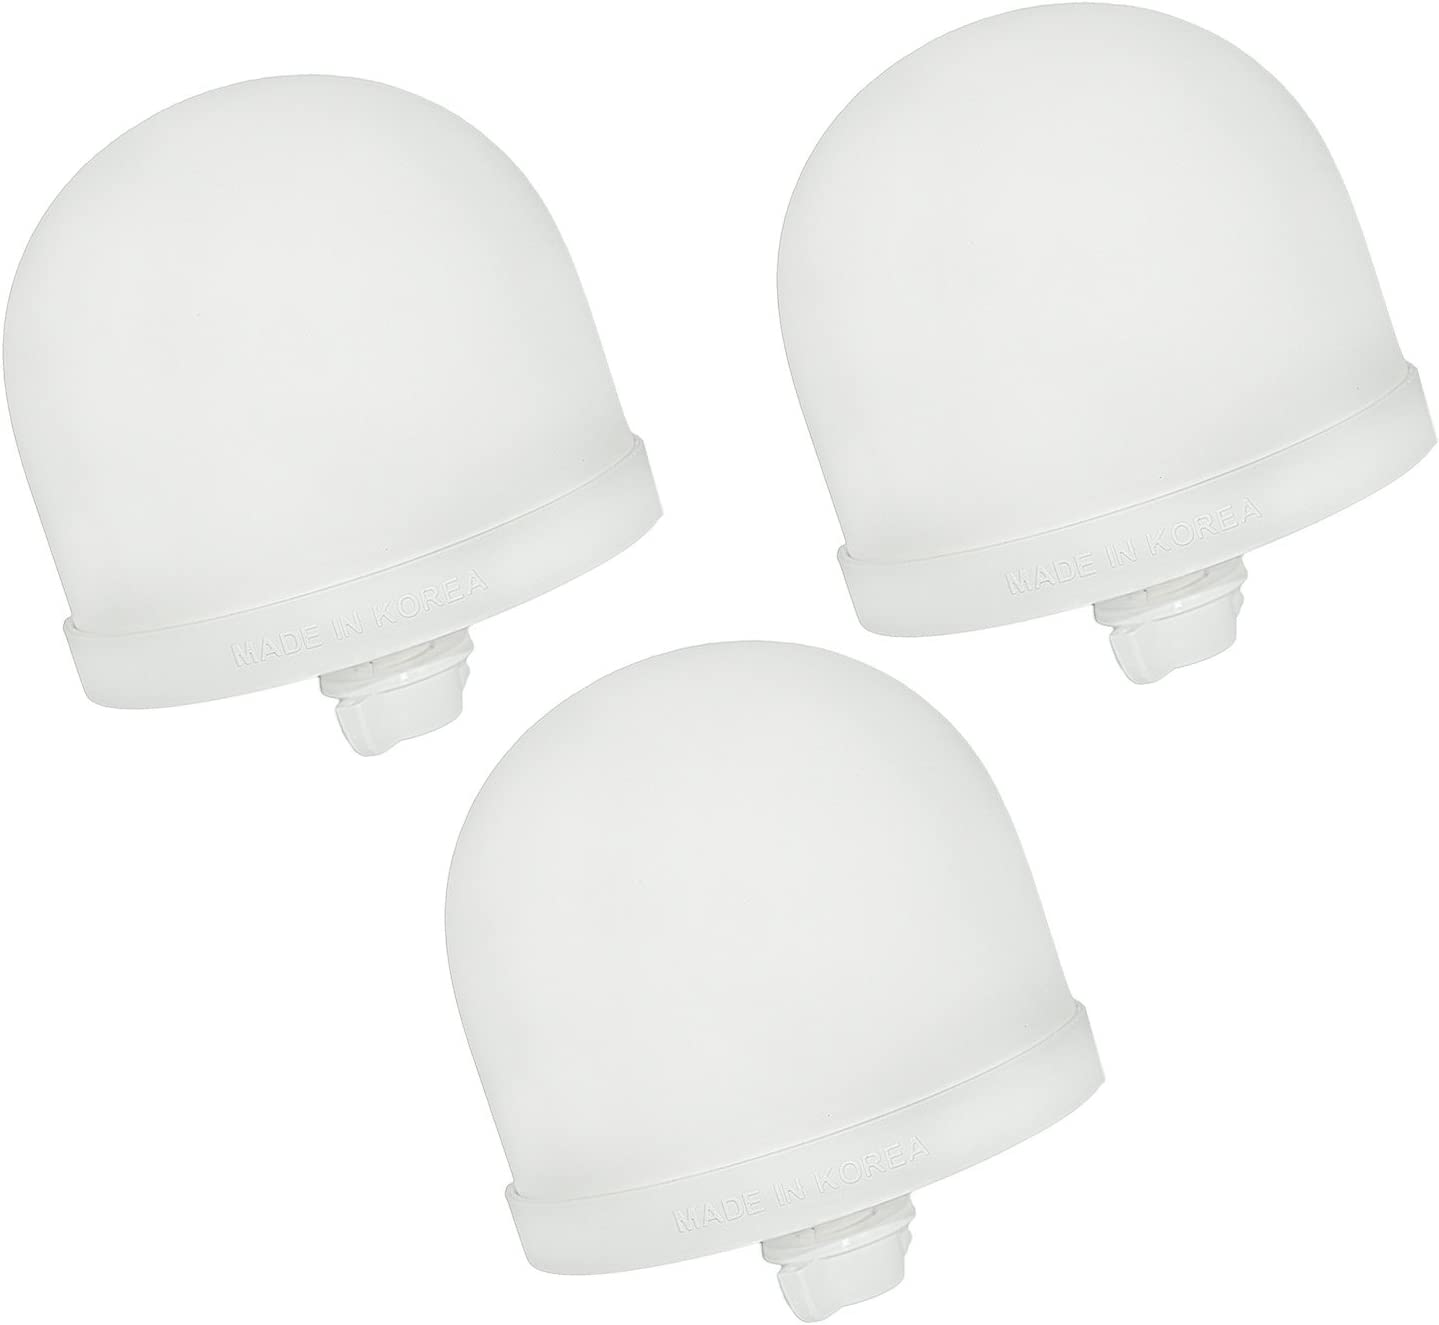 Aquaboon 3-Pack of Korea Ceramic Dome Replacement Water Filter for Zen Water Systems: Home & Kitchen